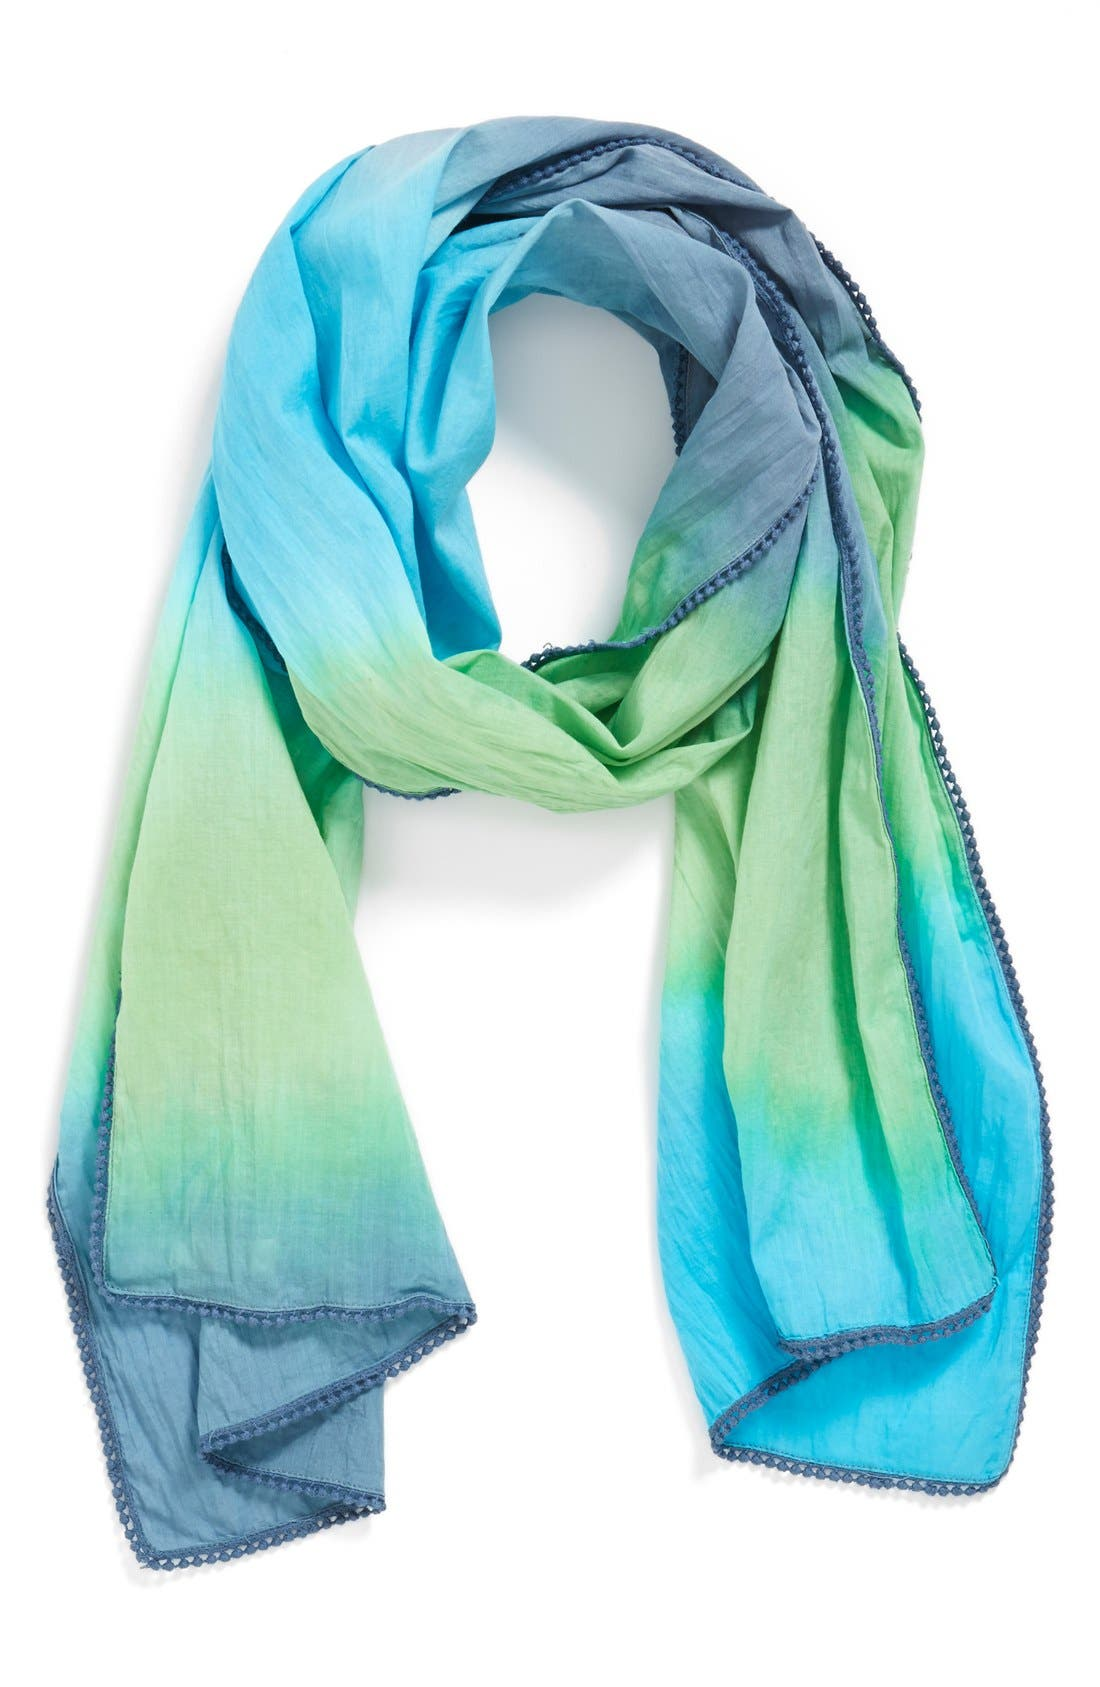 Alternate Image 1 Selected - Peek 'Sunita' Scarf (Girls)